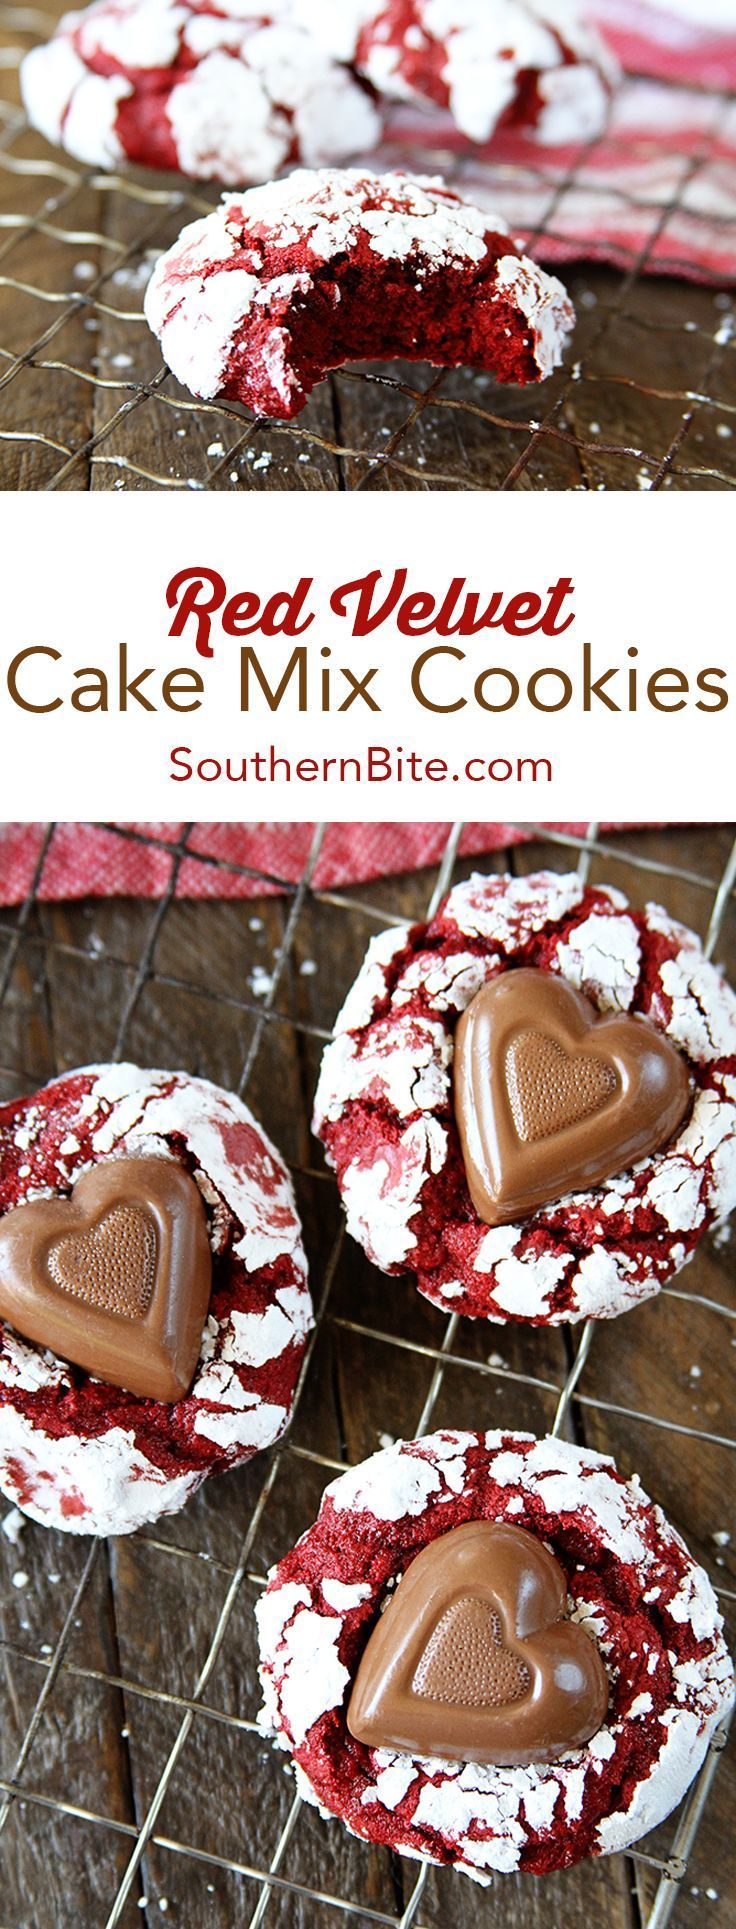 With only 4 ingredients, these Red Velvet Cake Mix Cookies are easier than you think. They're pillowy perfection! #easy #recipes #valentinesday #redvelvet #cake